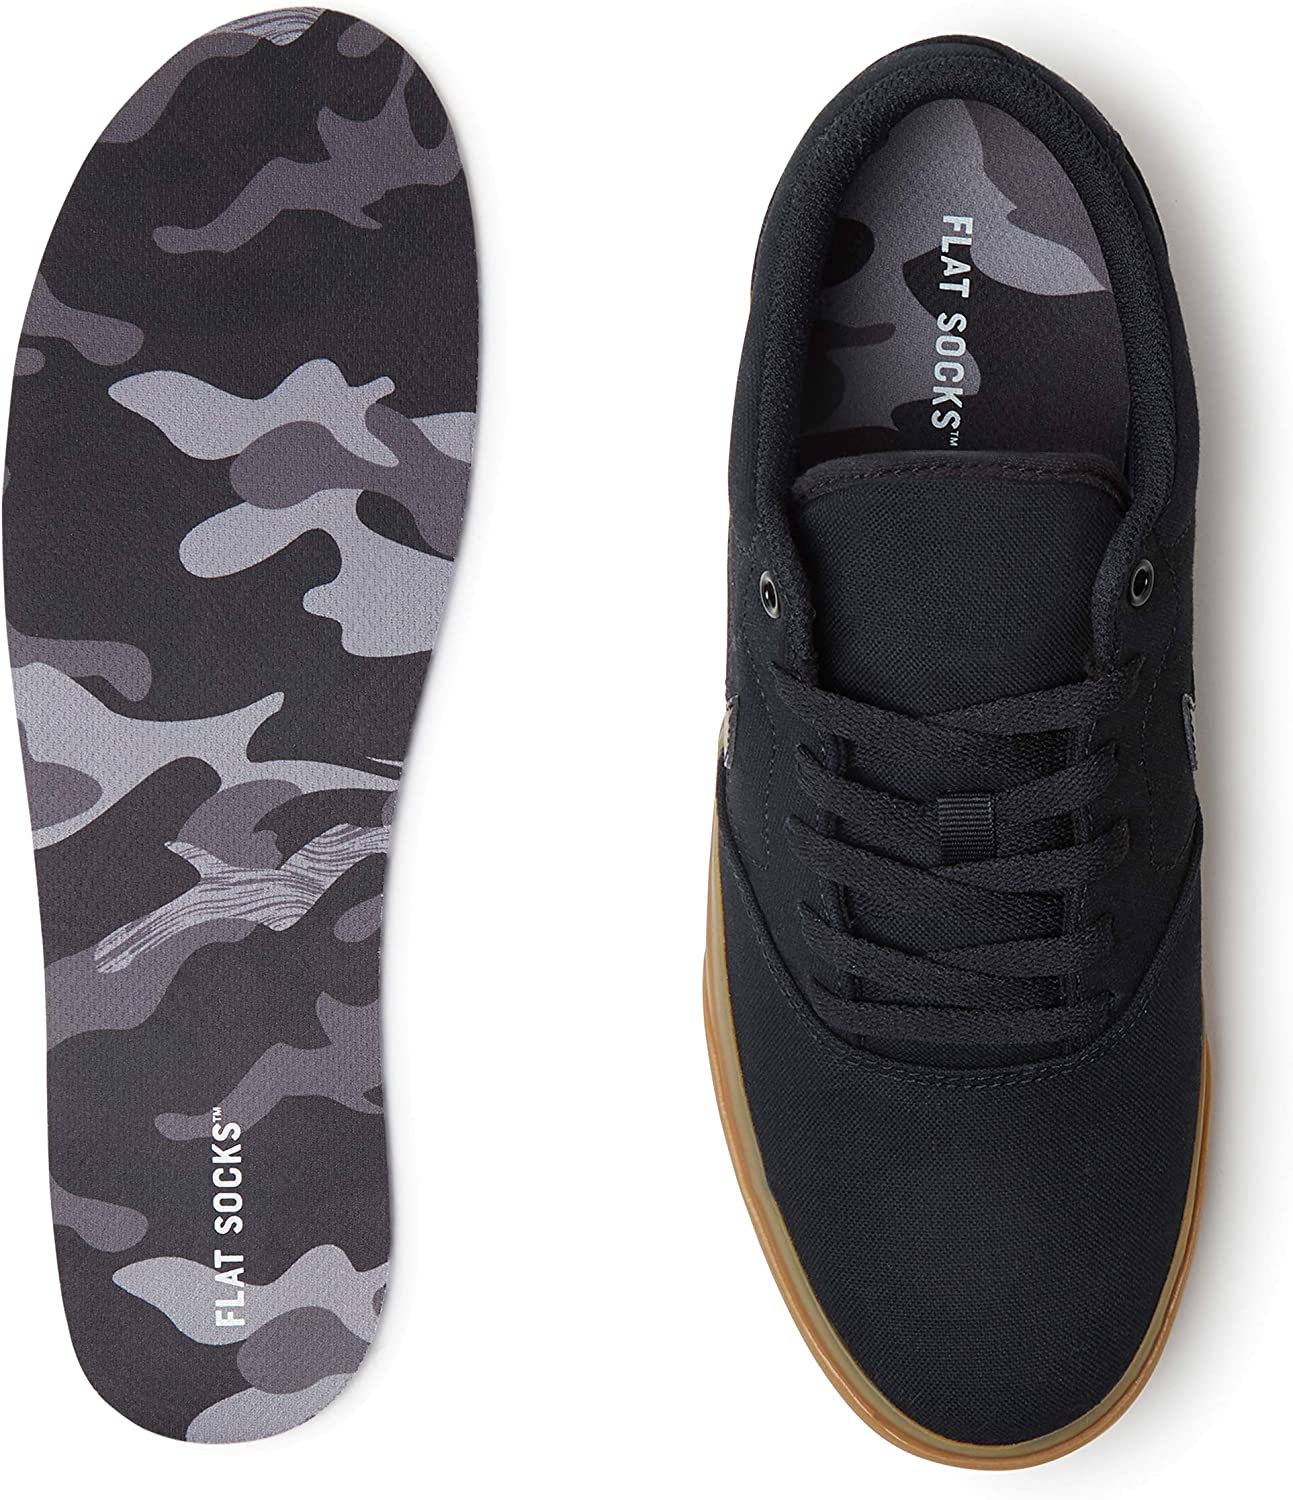 FLAT SOCKS - No Show Cushioned Trim to Fit Non Slip Sock, Mesh Material (Black Camo, Large)